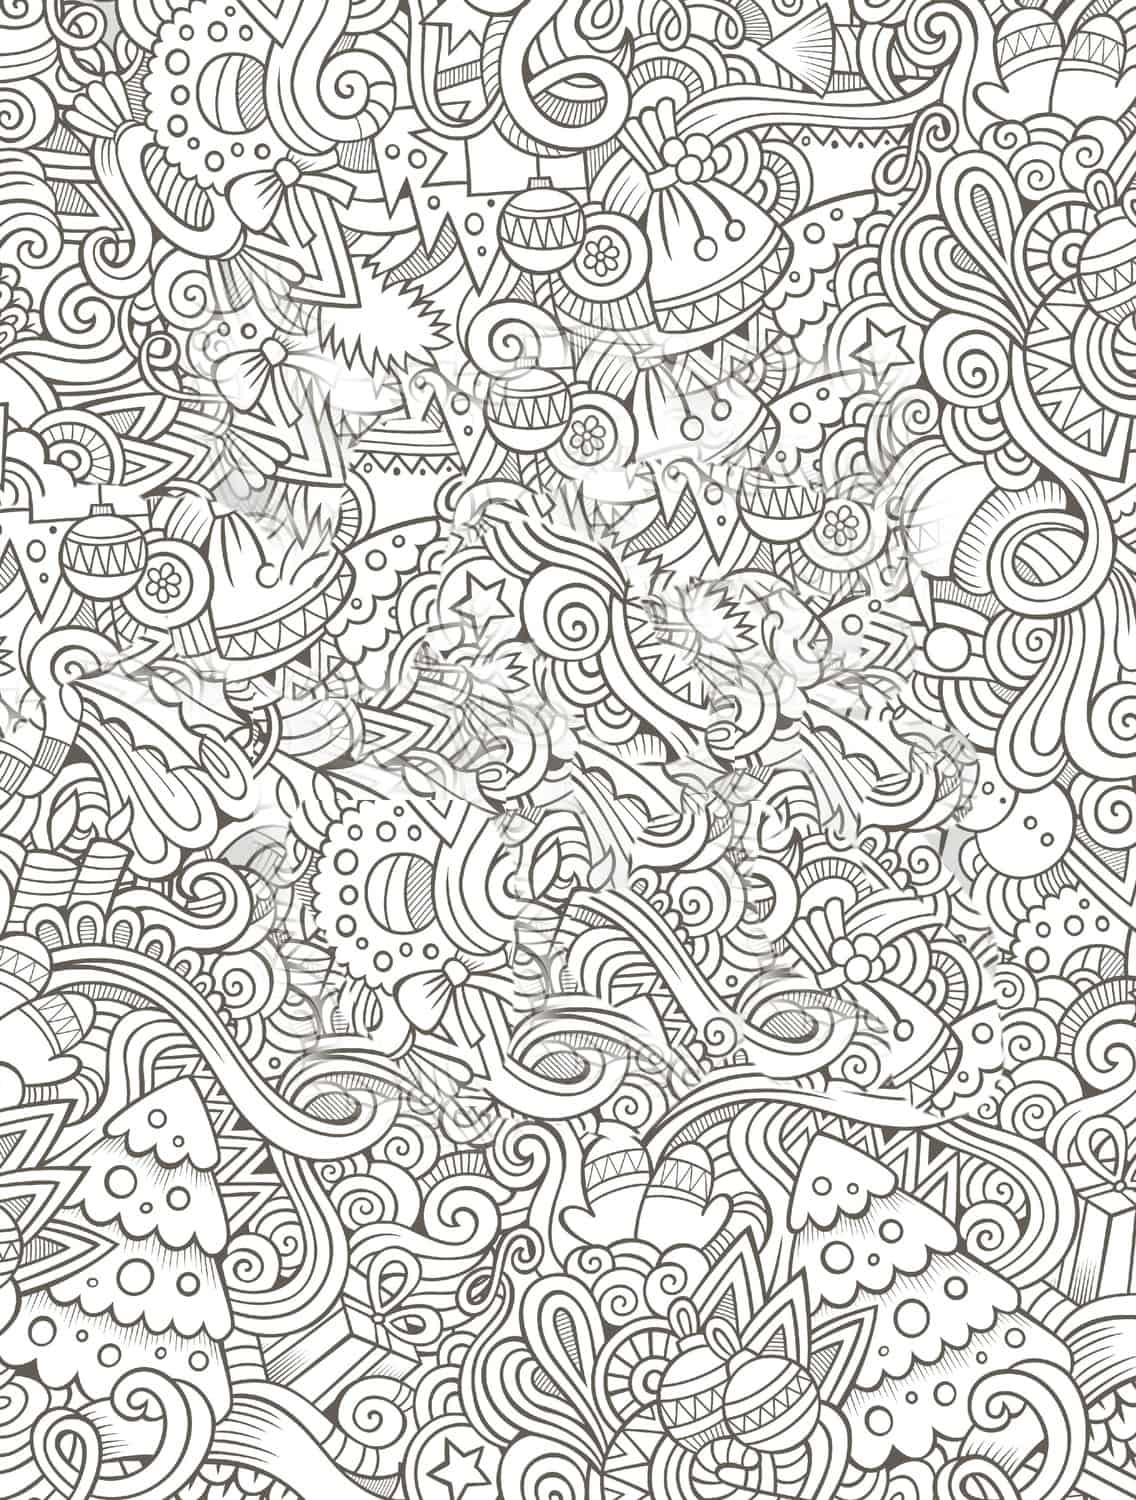 Free printable coloring in pages - Busy Coloring Page For Free Christmas Gift Small